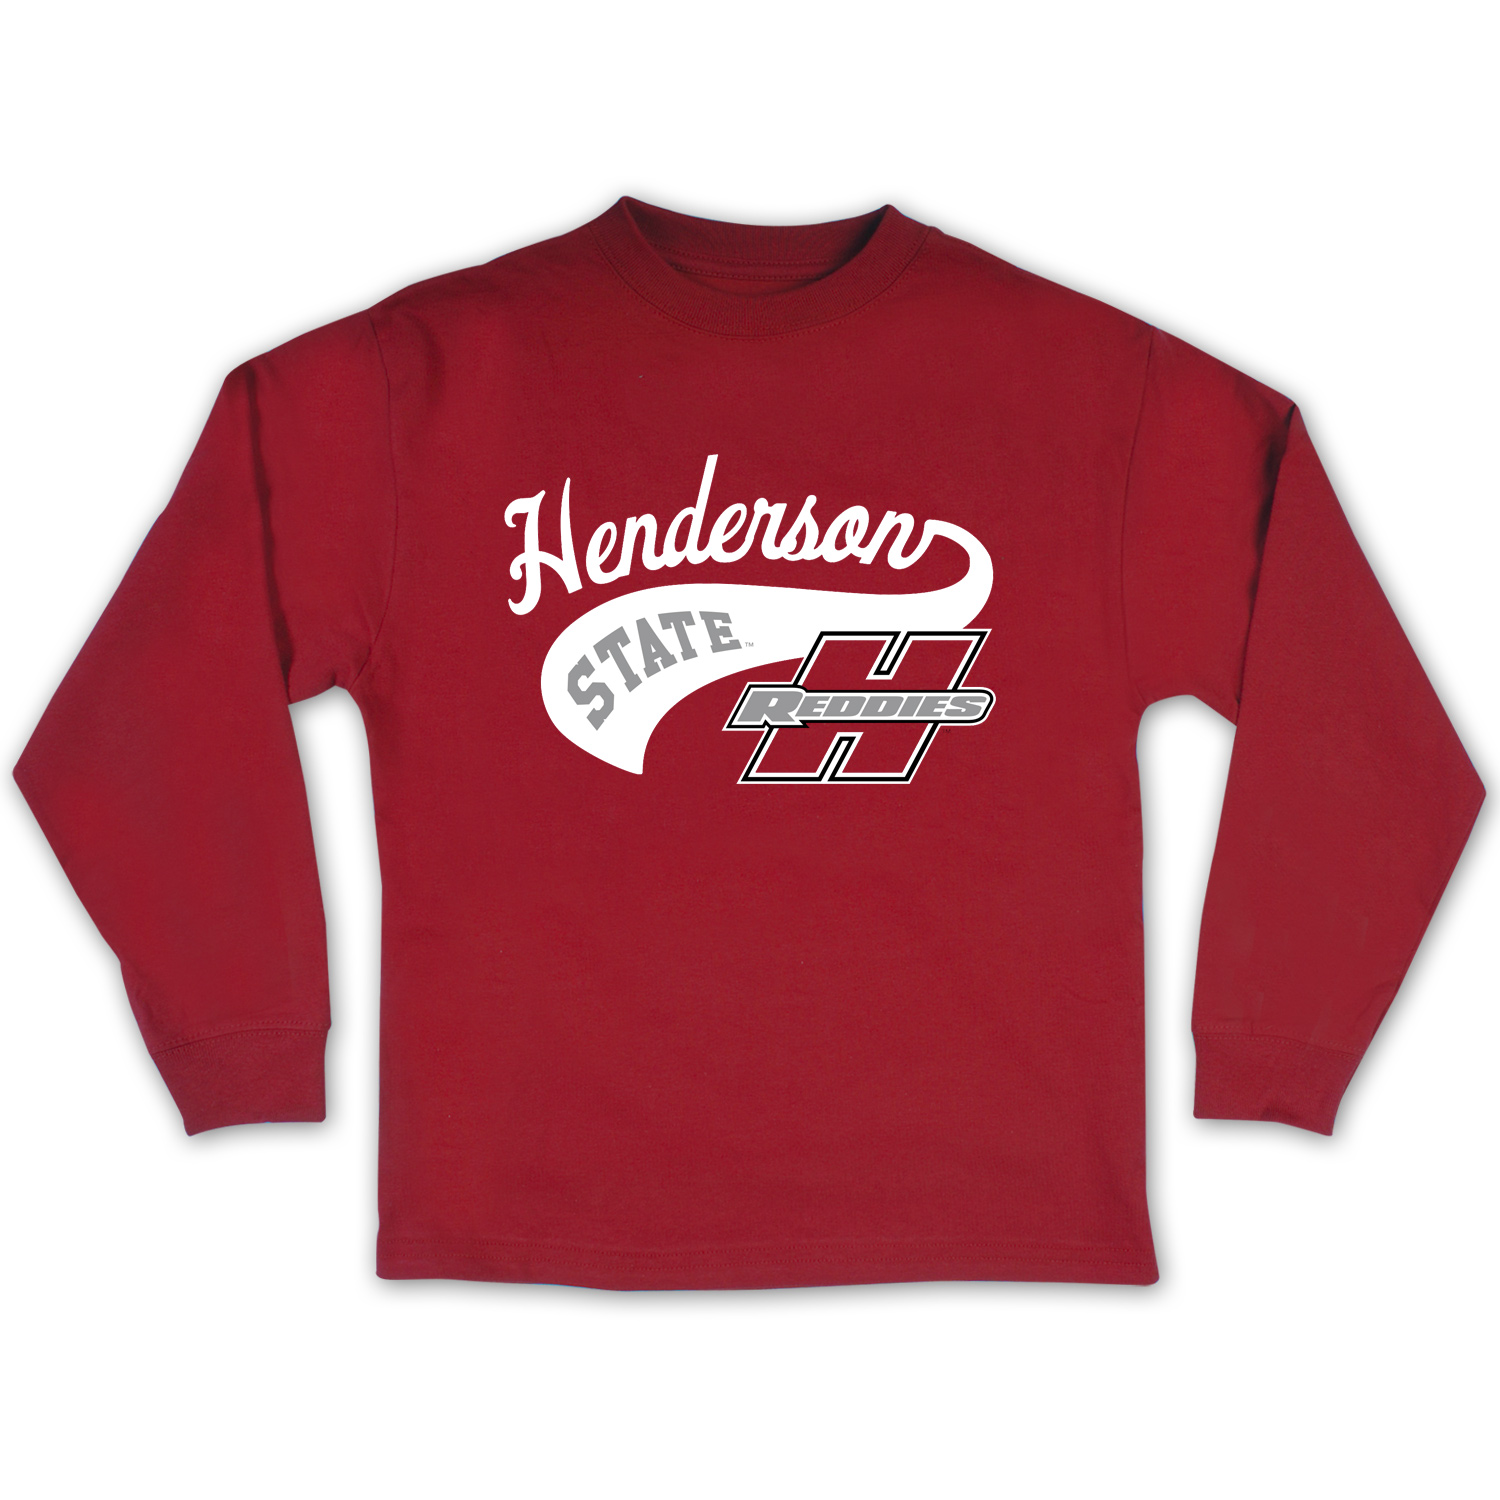 Henderson State Reddies Youth Long Sleeve T-Shirt